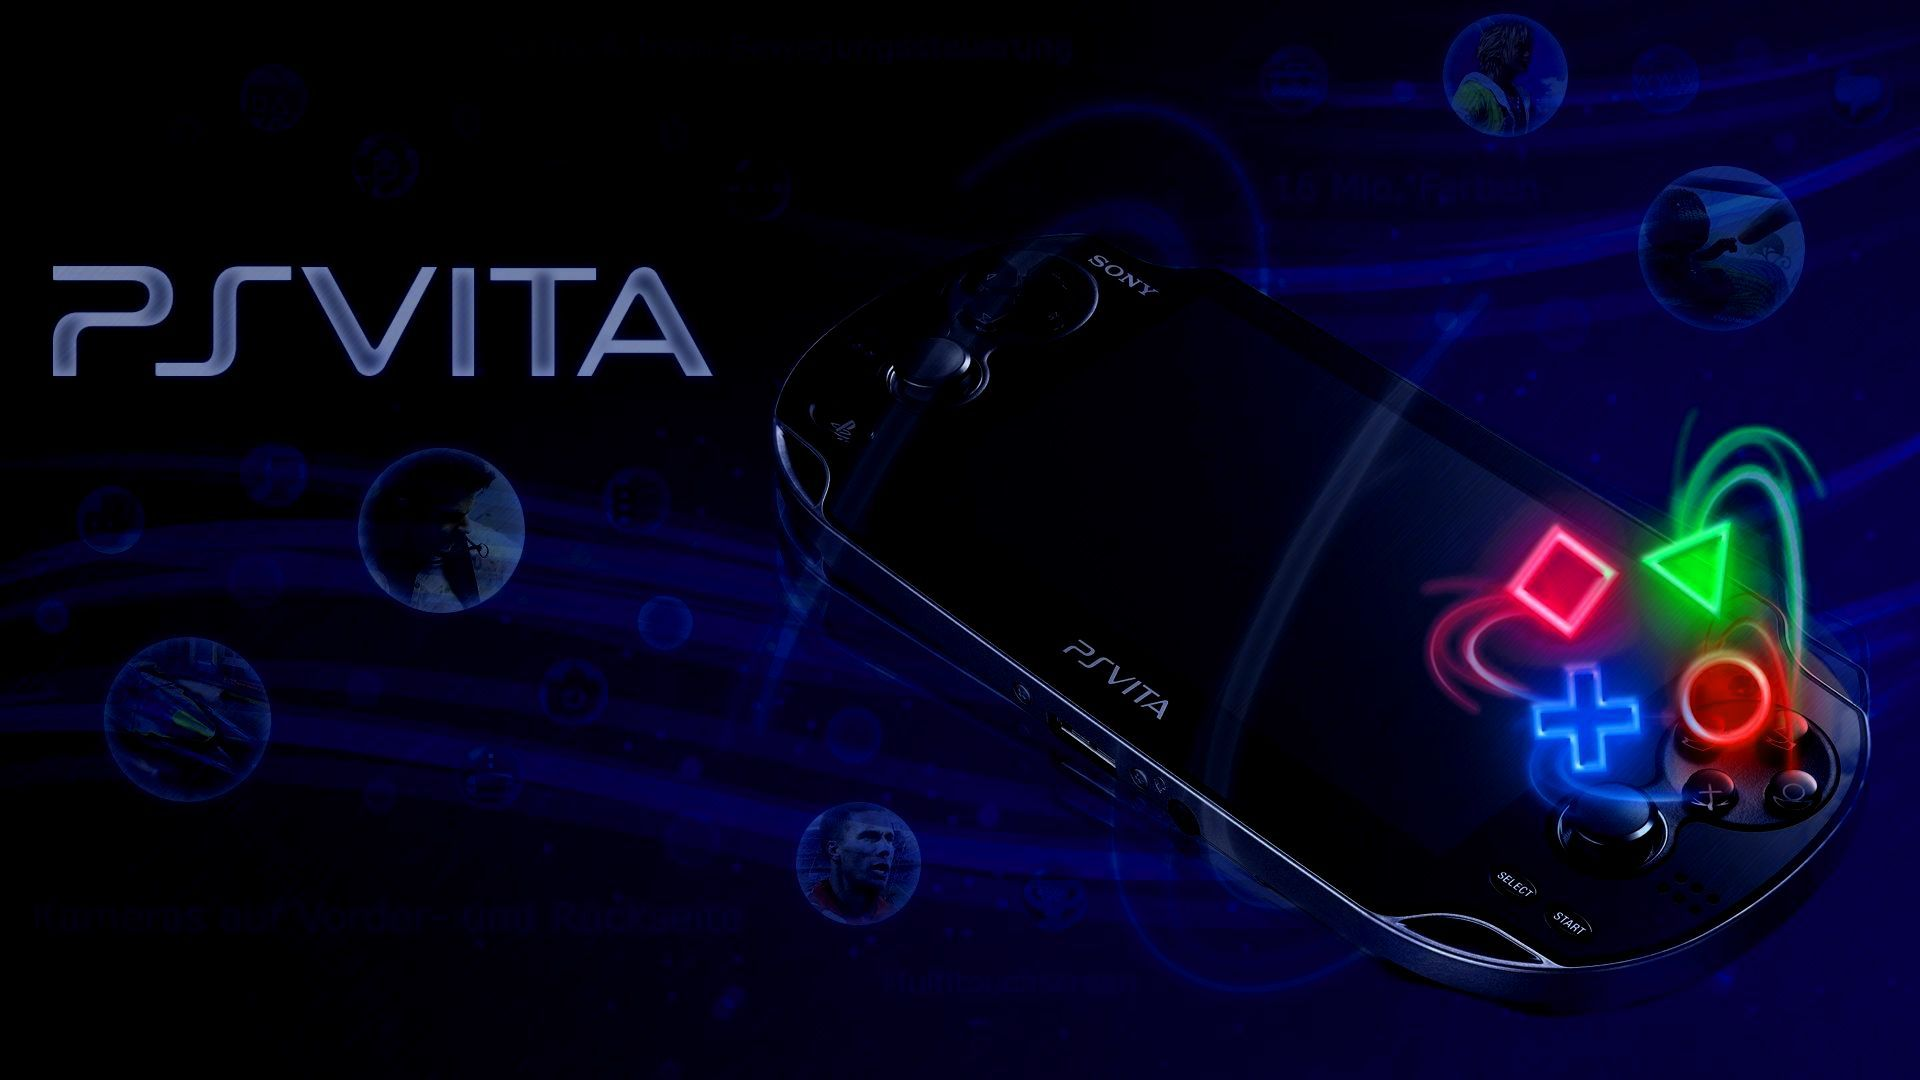 playstation vita wallpaper thread customizing dat oled screen | hd